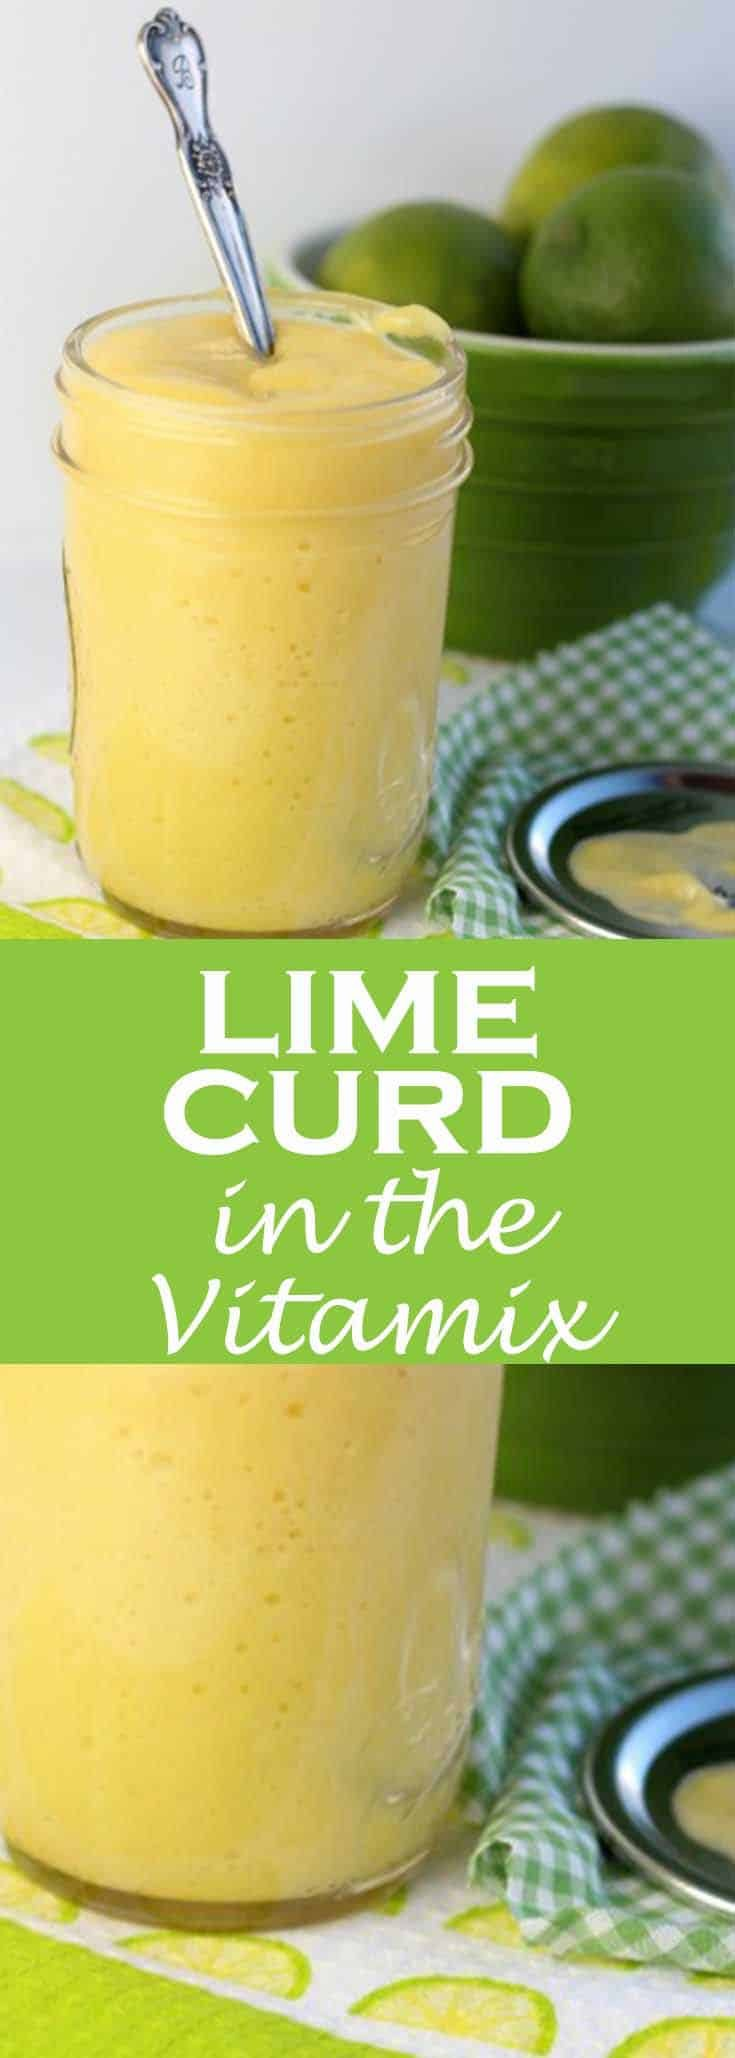 This lime curd in the Vitamix is a bright splash and taste of citrus for a January morning. Make it with your Vitamix or Blendtec for a quick method of creating curds at home. While the traditional method of whisking the egg mixture over a double boiler works well, the blender method is so much faster. Five minutes fast. #limecurd #lime #fruitspread #preserving #abakershouse #limes